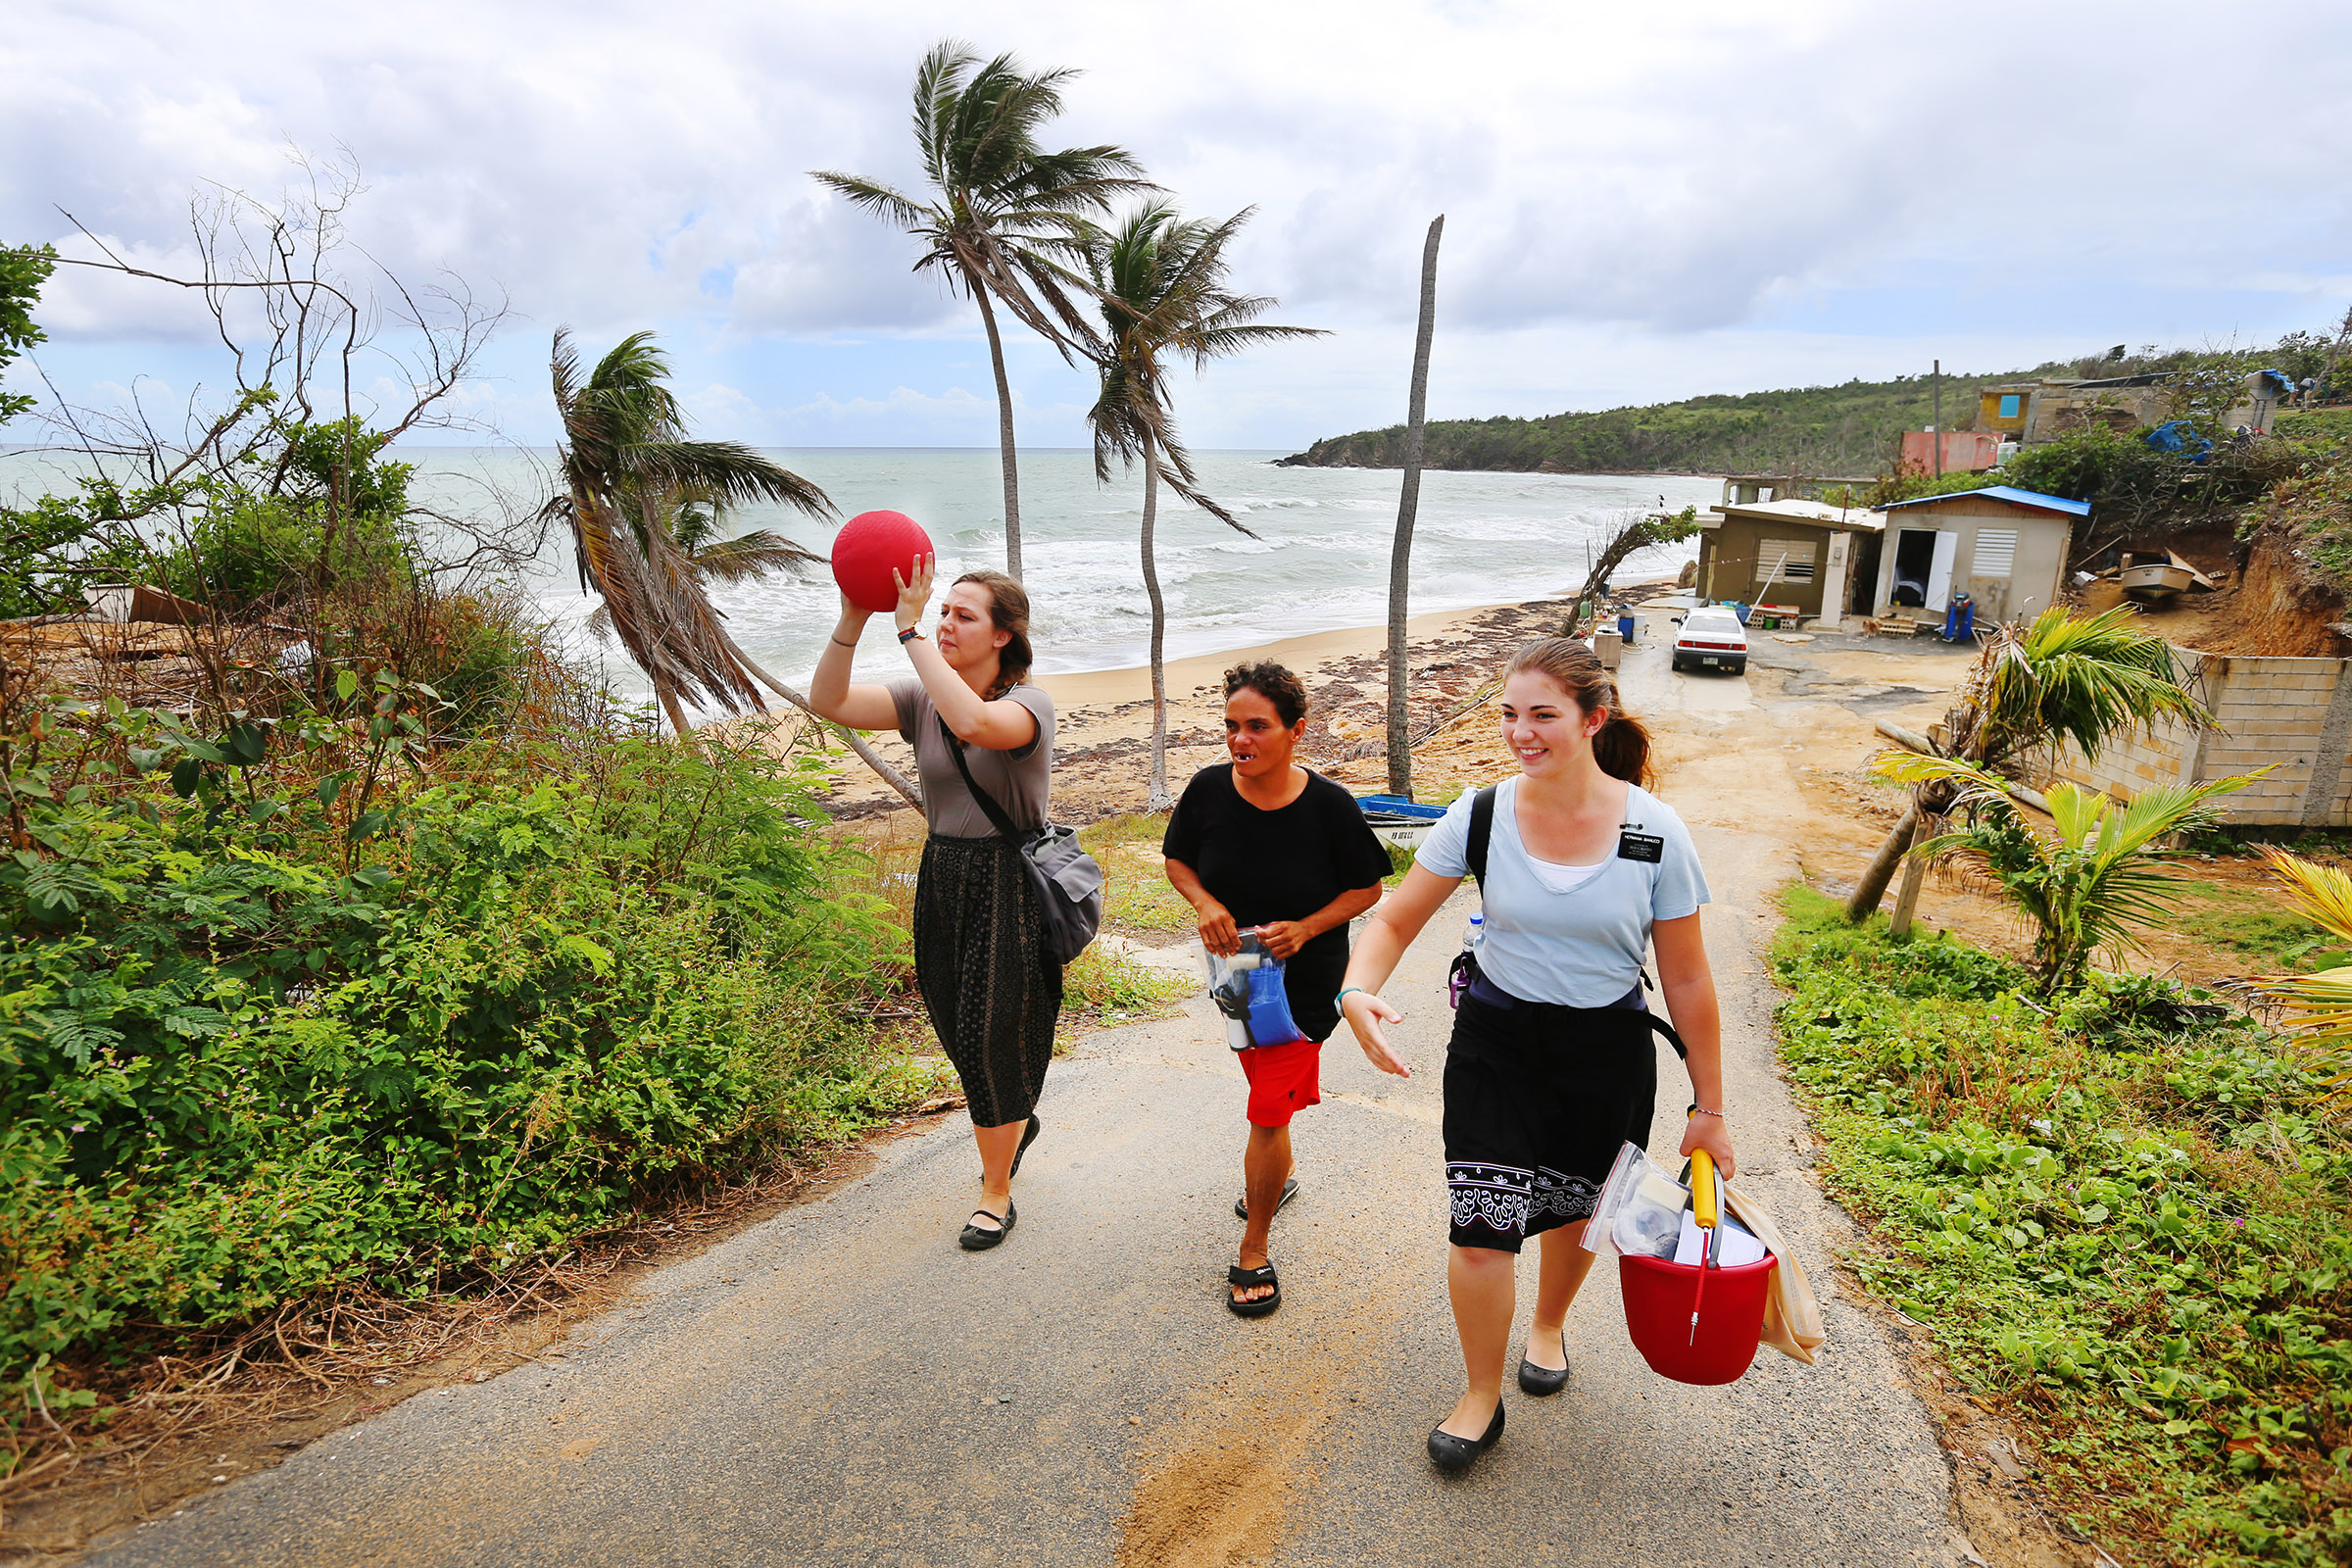 Sister's Mary Ruff from Midvale Utah, and Erin Bianucci from Layton Utah, talk with Miraida Ortiz as they walk up a small ocean side road in Puerto Rico on Saturday, Feb. 17, 2018.